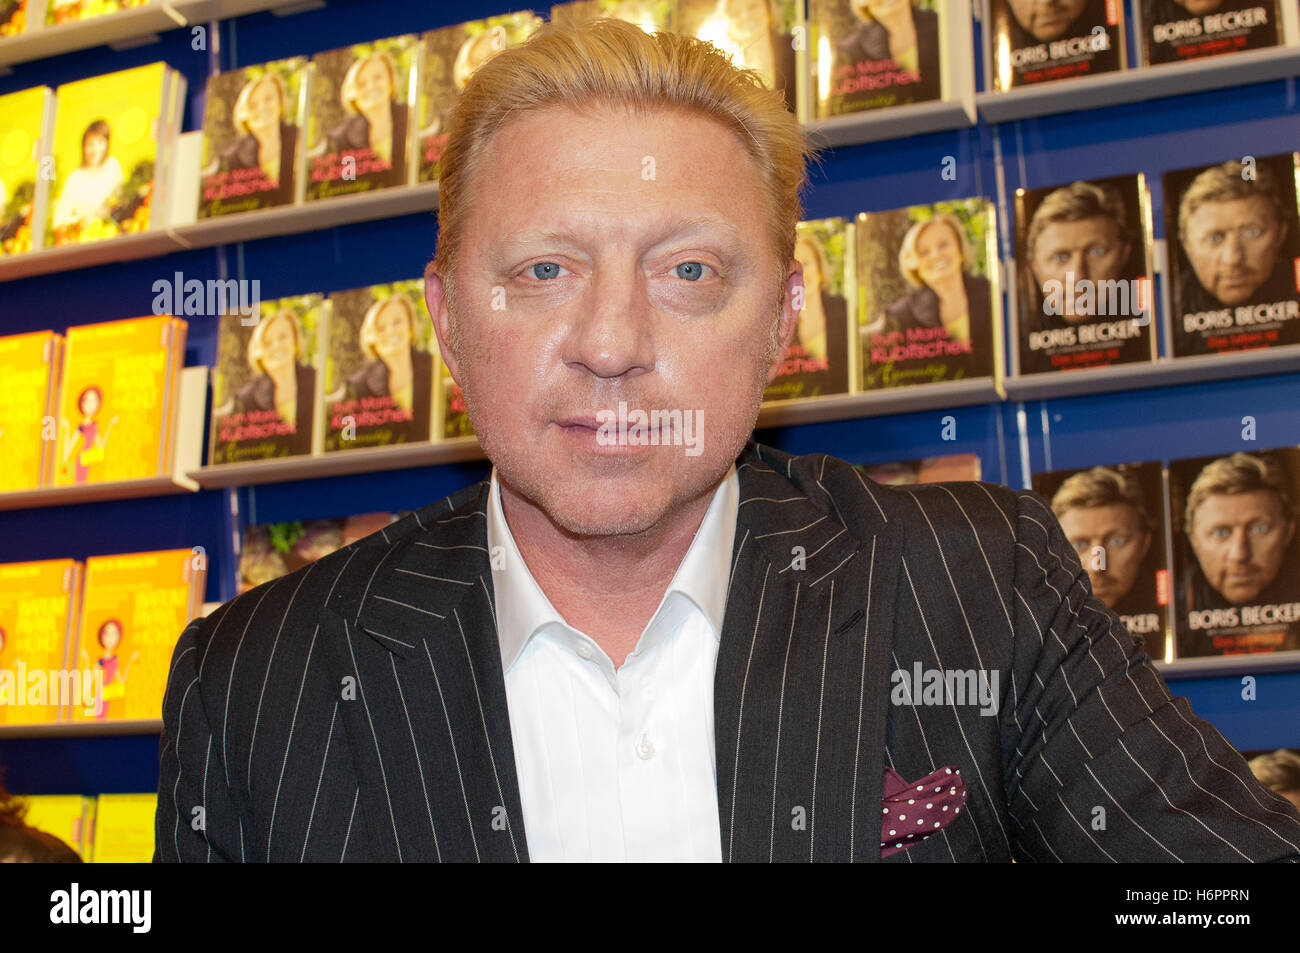 Boris Becker Stock Photos & Boris Becker Stock Images